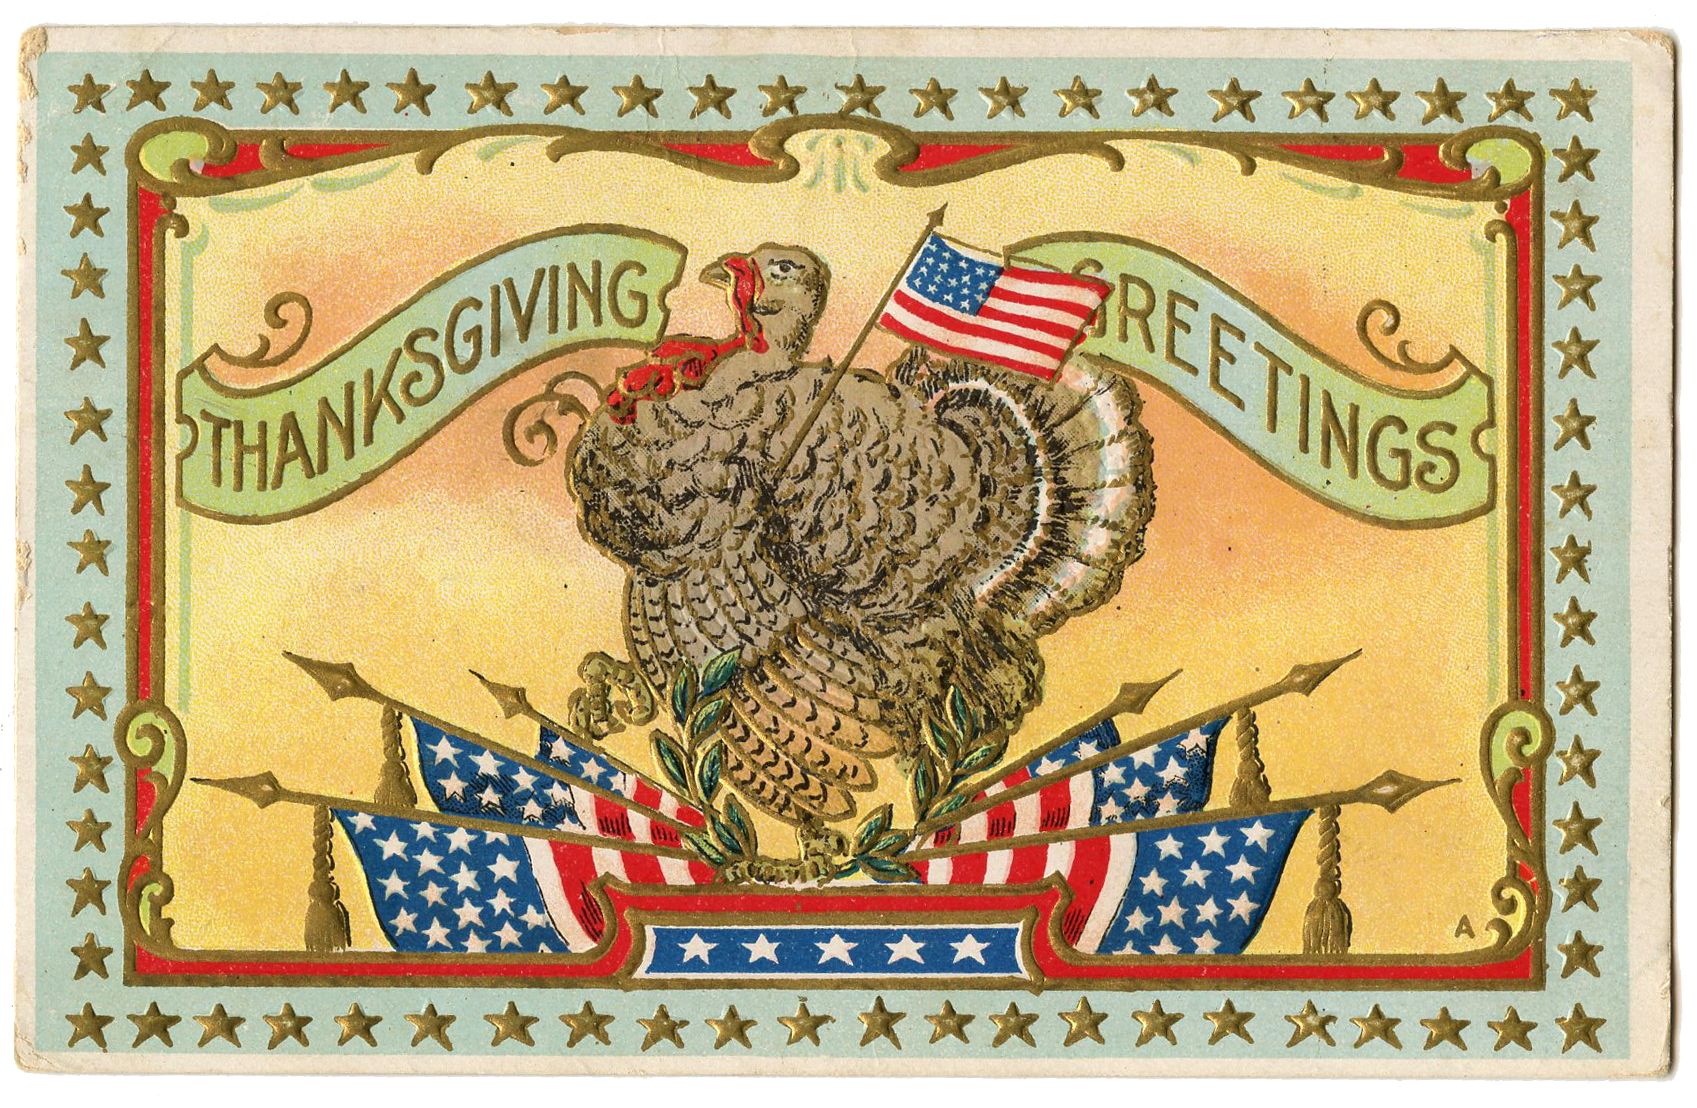 Patriotic Thanksgiving Turkey with Flags Image